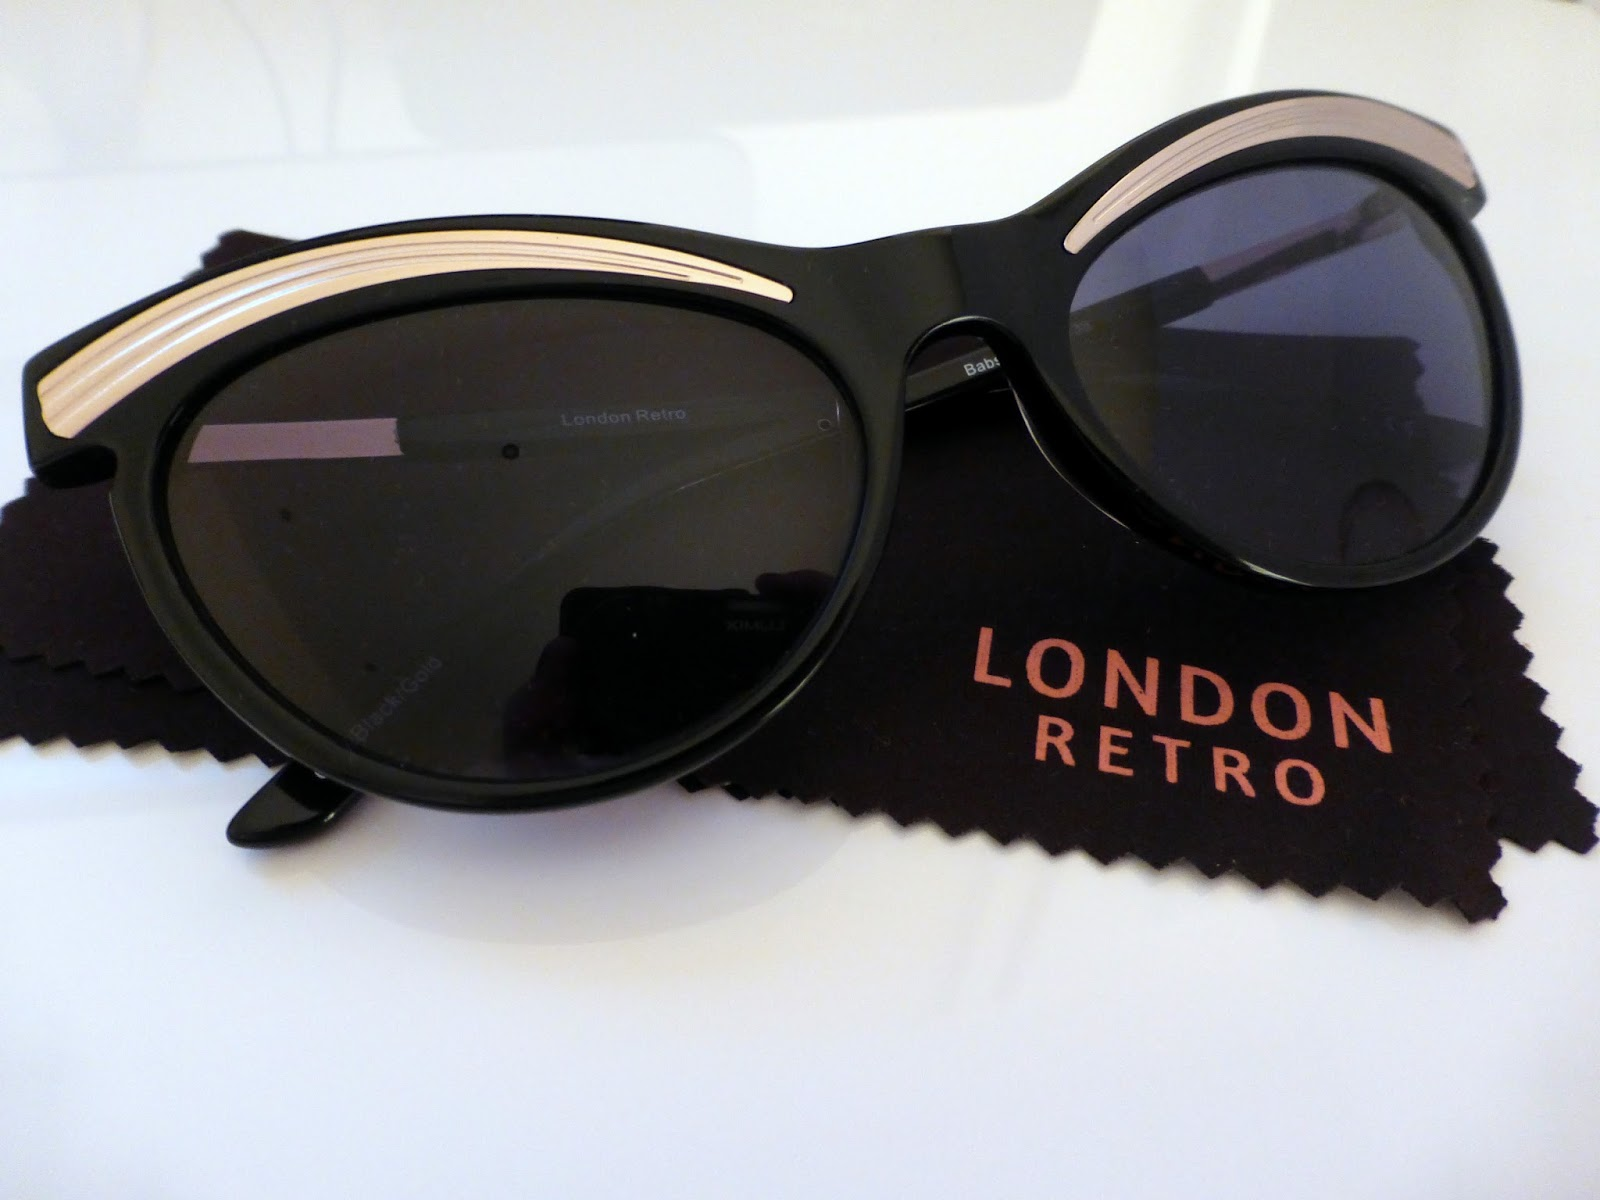 Sunglasses Shop London Retro